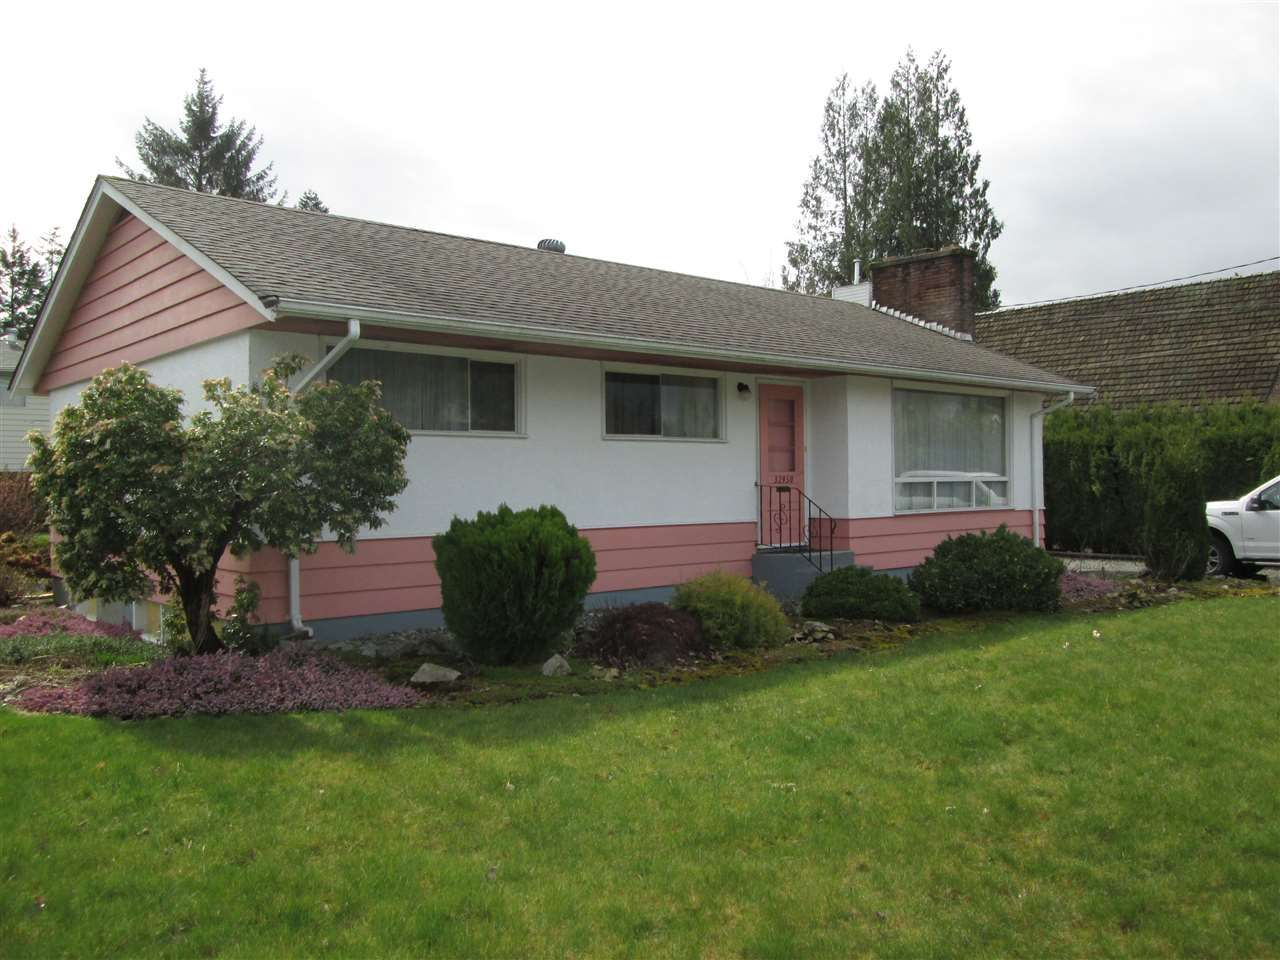 """Main Photo: 32950 BEVAN Avenue in Abbotsford: Central Abbotsford House for sale in """"Mill Lake Area"""" : MLS®# R2251284"""